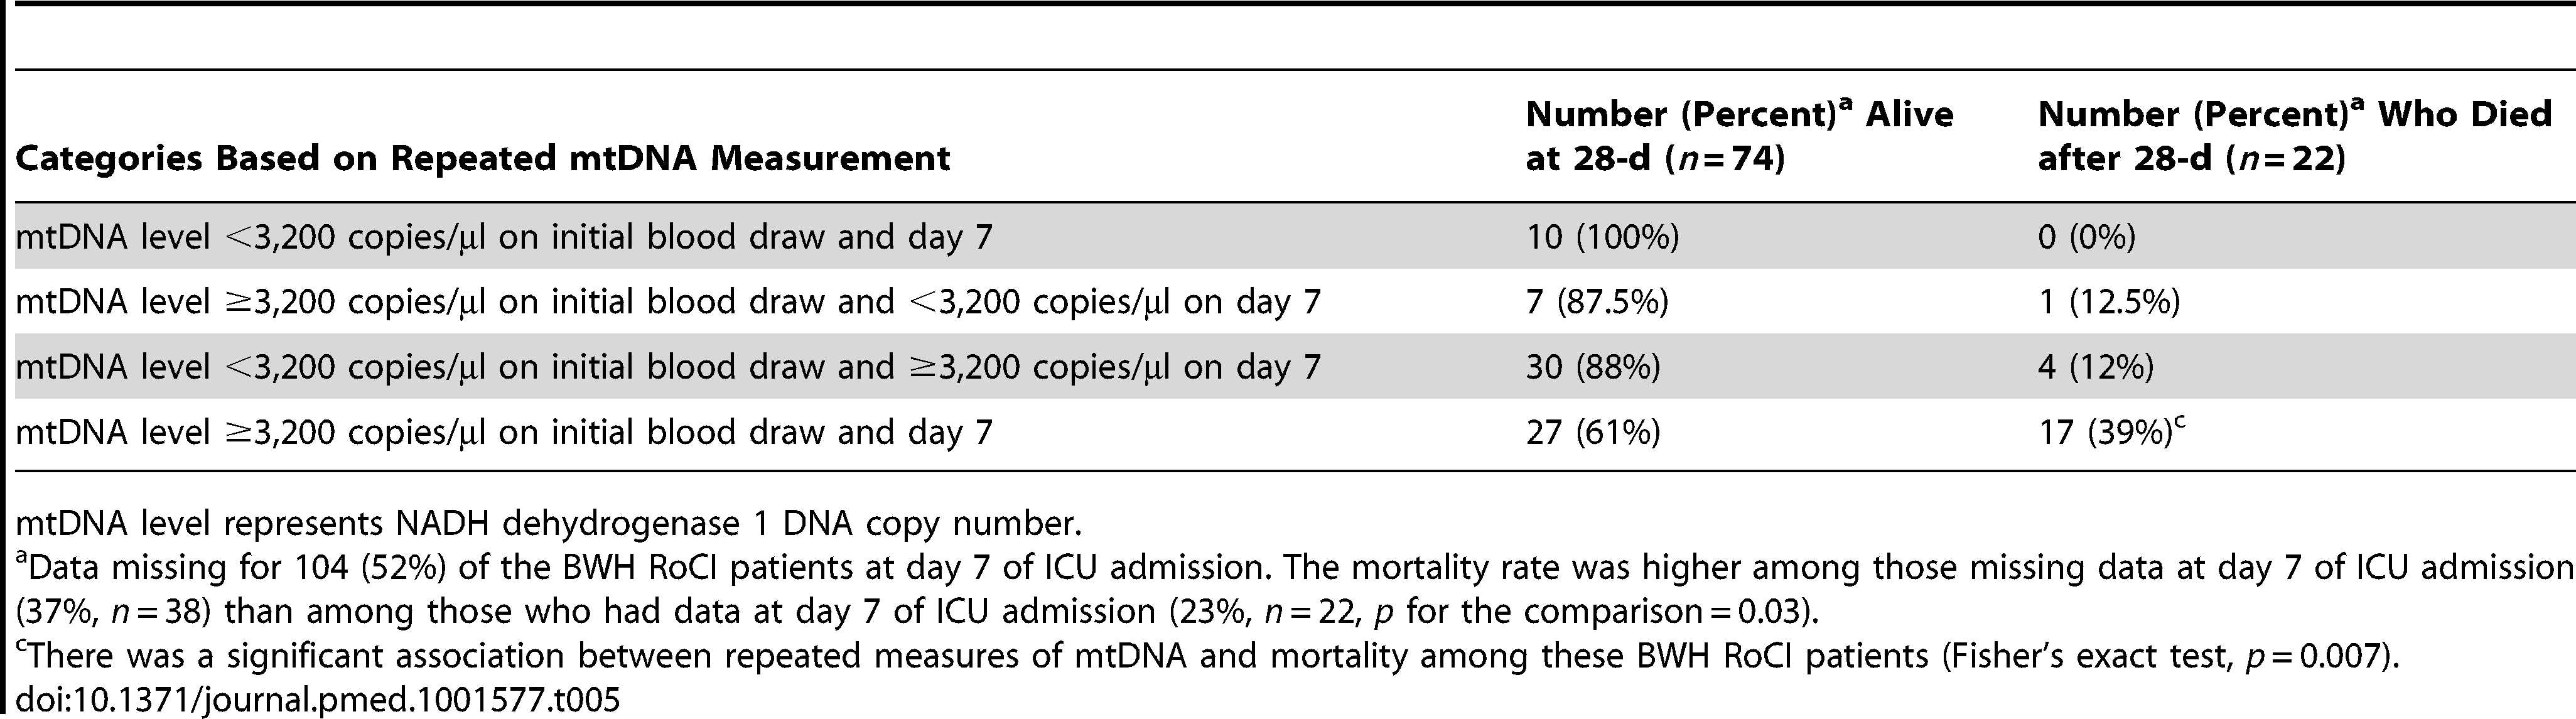 Repeated measures of mtDNA and 28-d mortality in the BWH RoCI cohort.